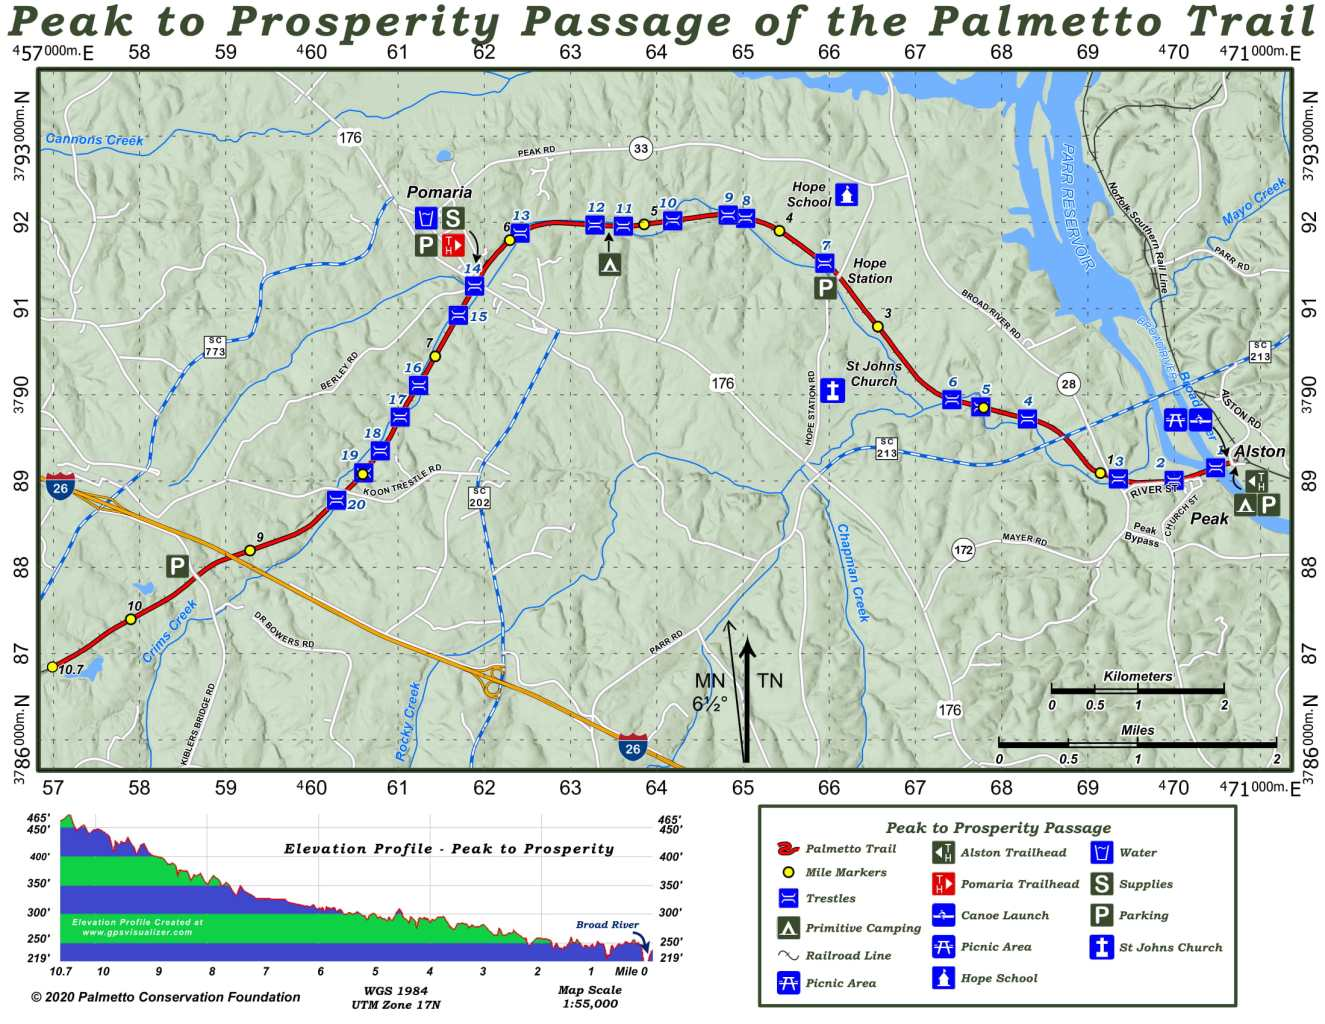 Palmetto Trail Peak to Prosperity Passage